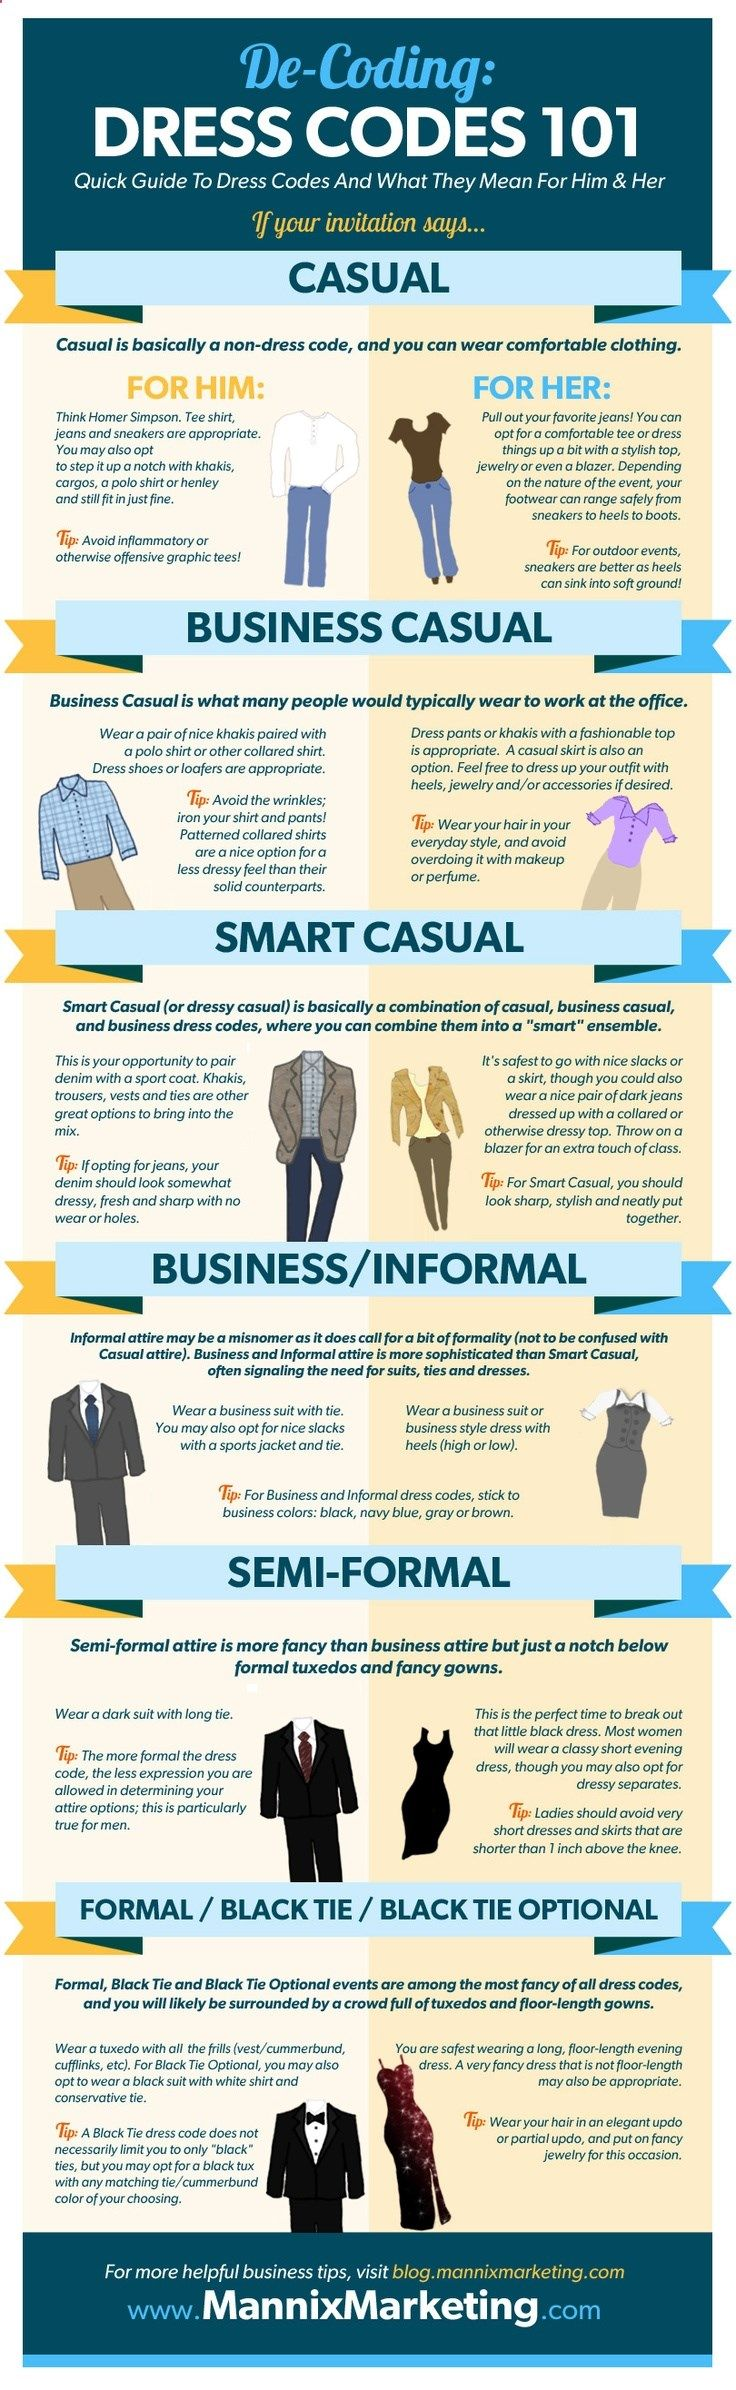 Dress Codes What They Mean His Her Guide To Appropriate Attire For Each Dress…